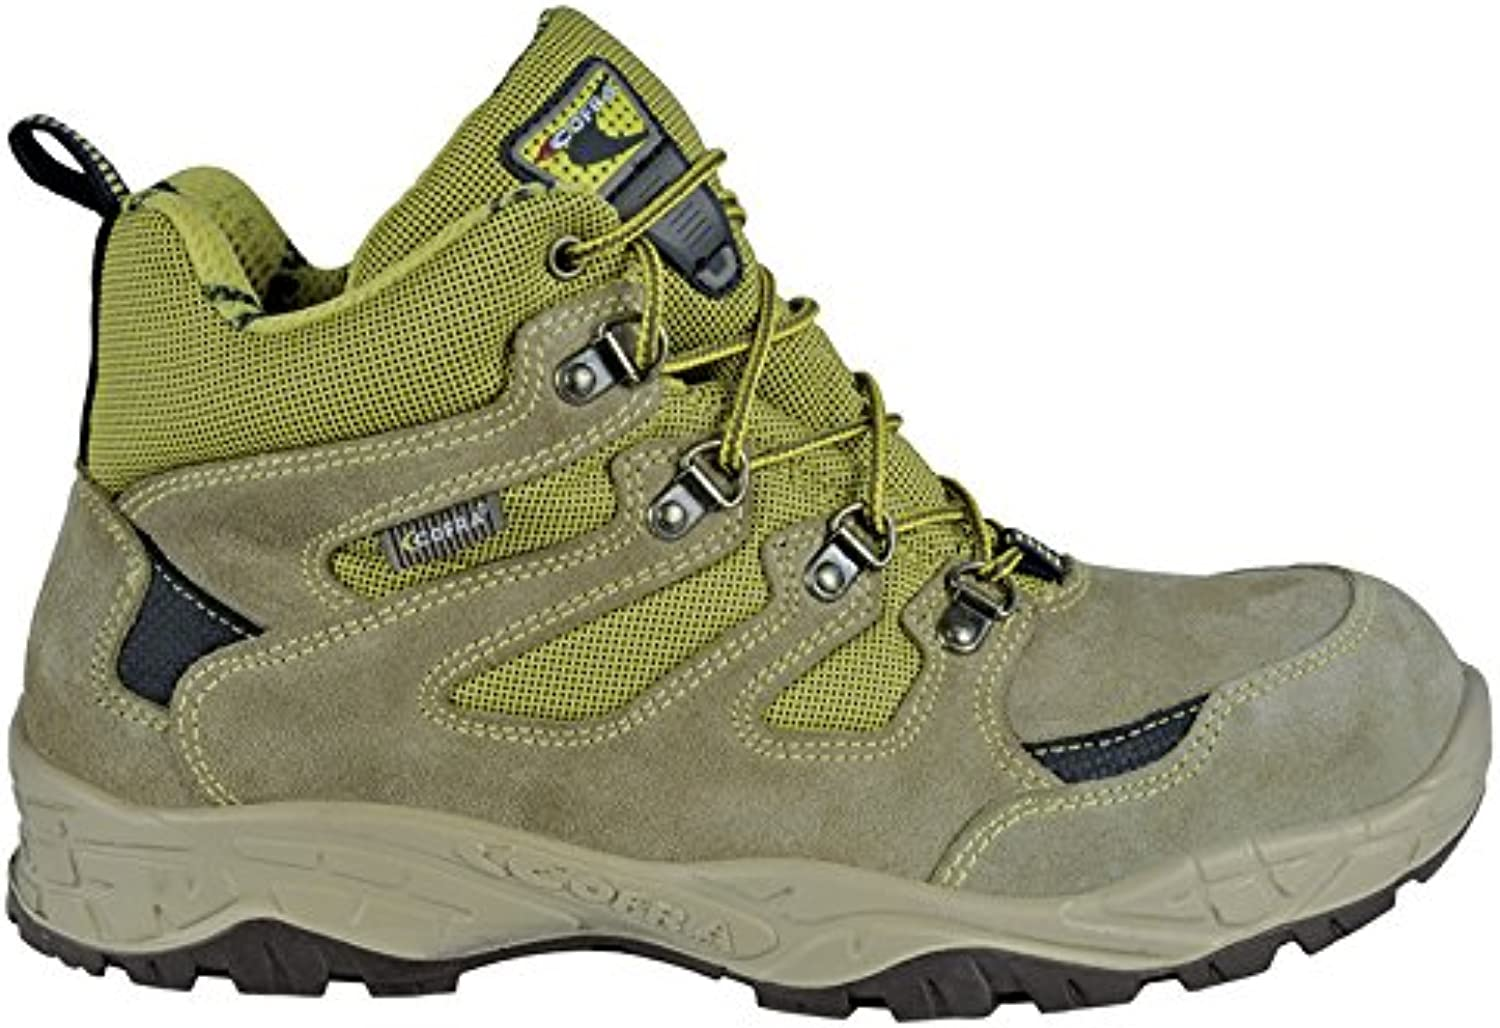 Cofra 22300-000.W42 Size 42 S1 P SRC Crevasse  Safety shoes - Grey Green